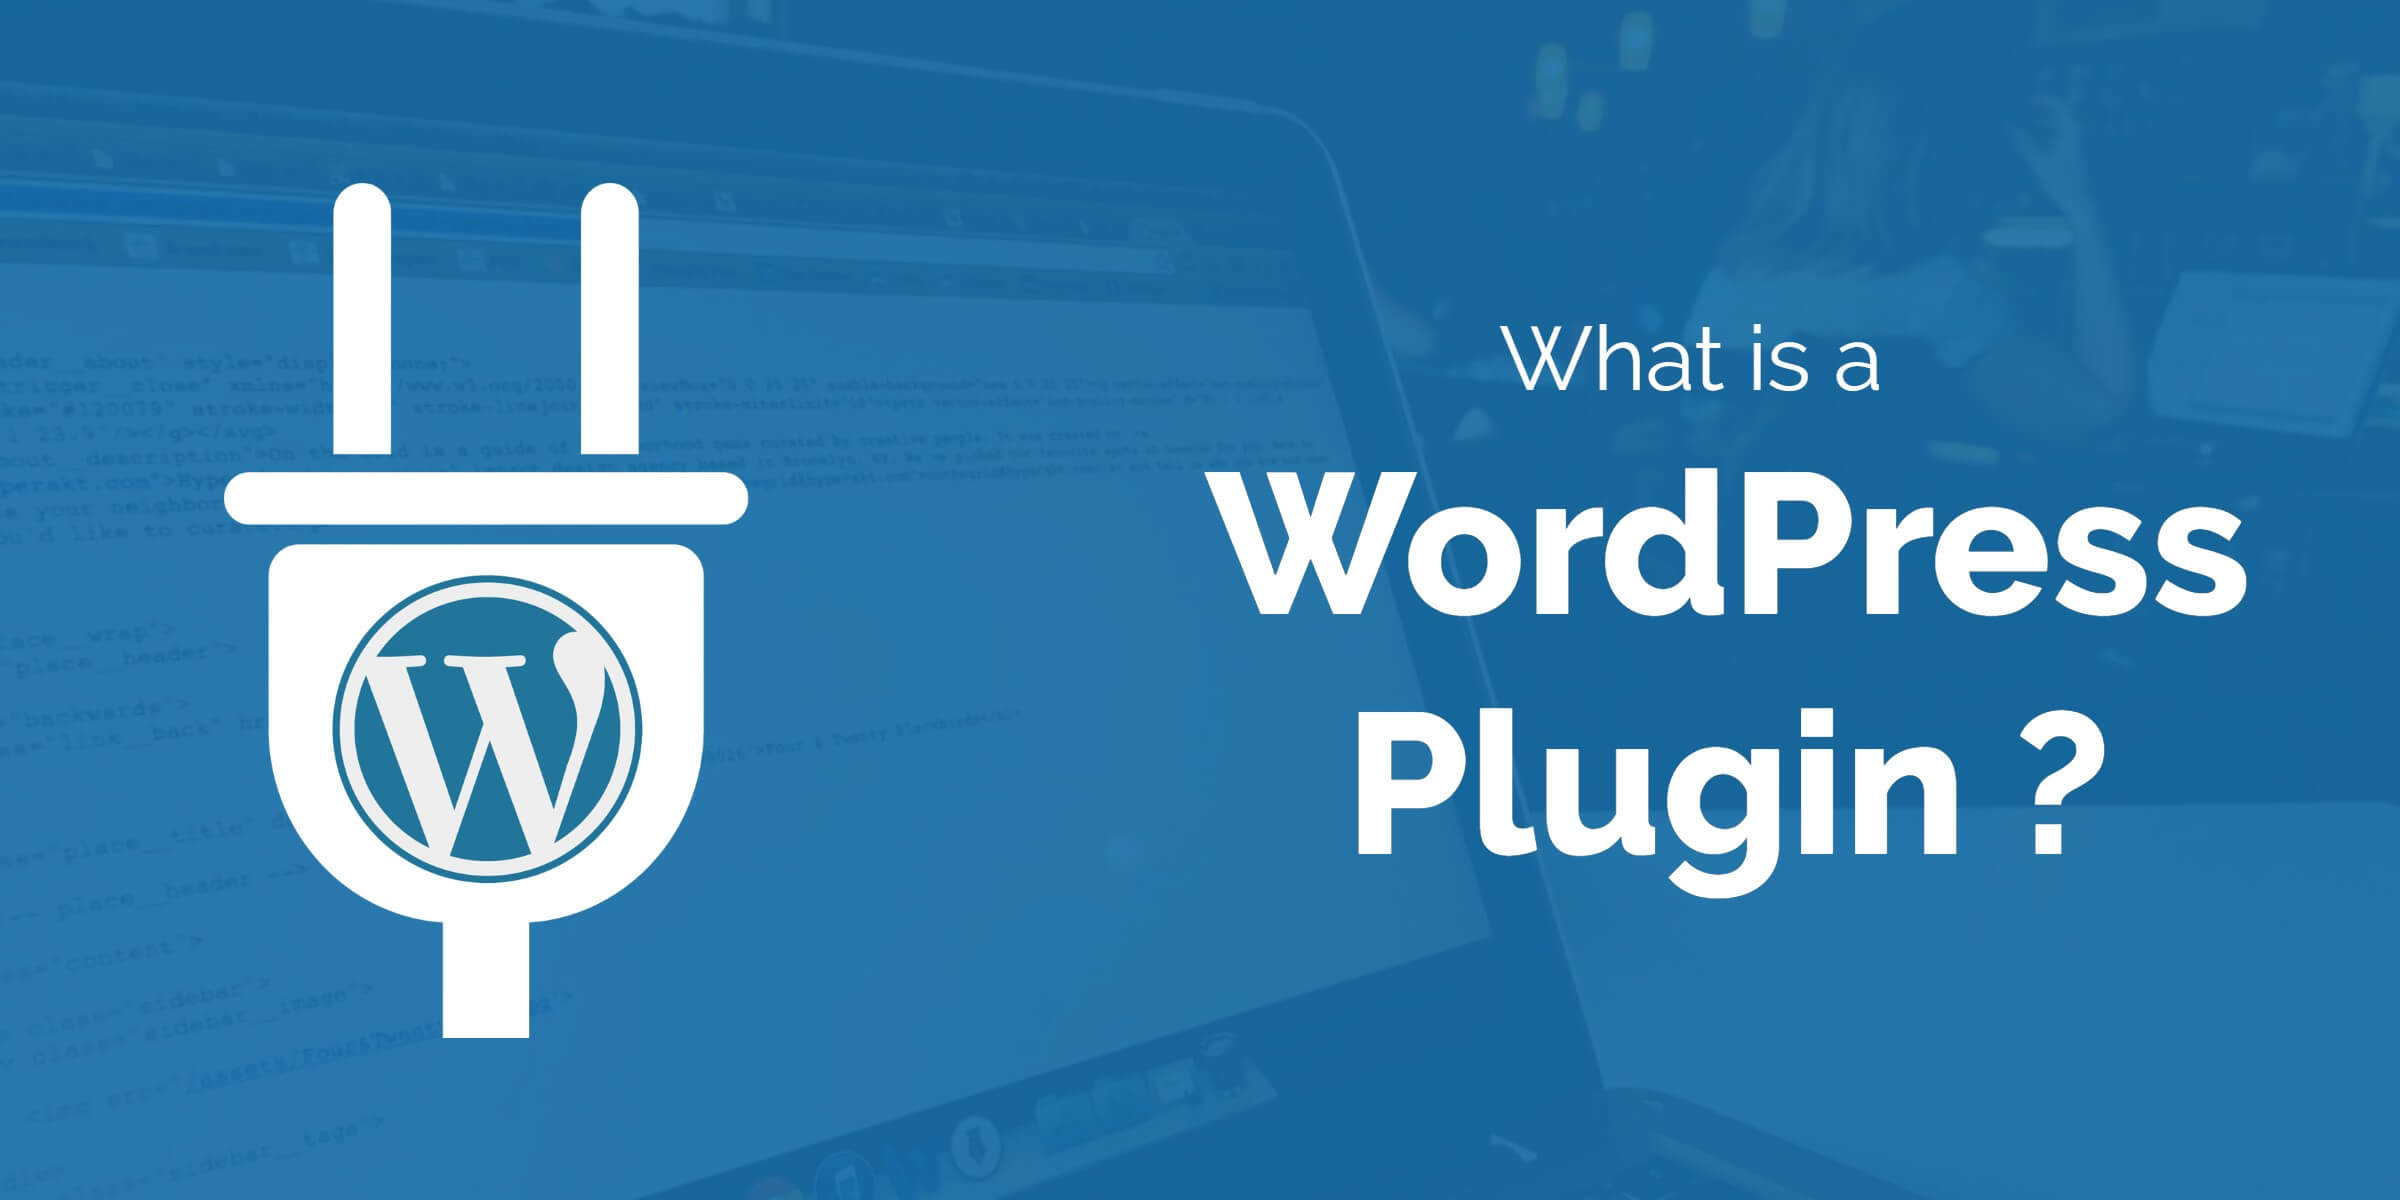 dbuggers,wordpress plugin, best plugins, wordpress rss plugin, define plugin, must have wordpress plugins, wordpress location plugin, what is a website plugin wordpress sitemap plugin, wordpress lightbox plugin